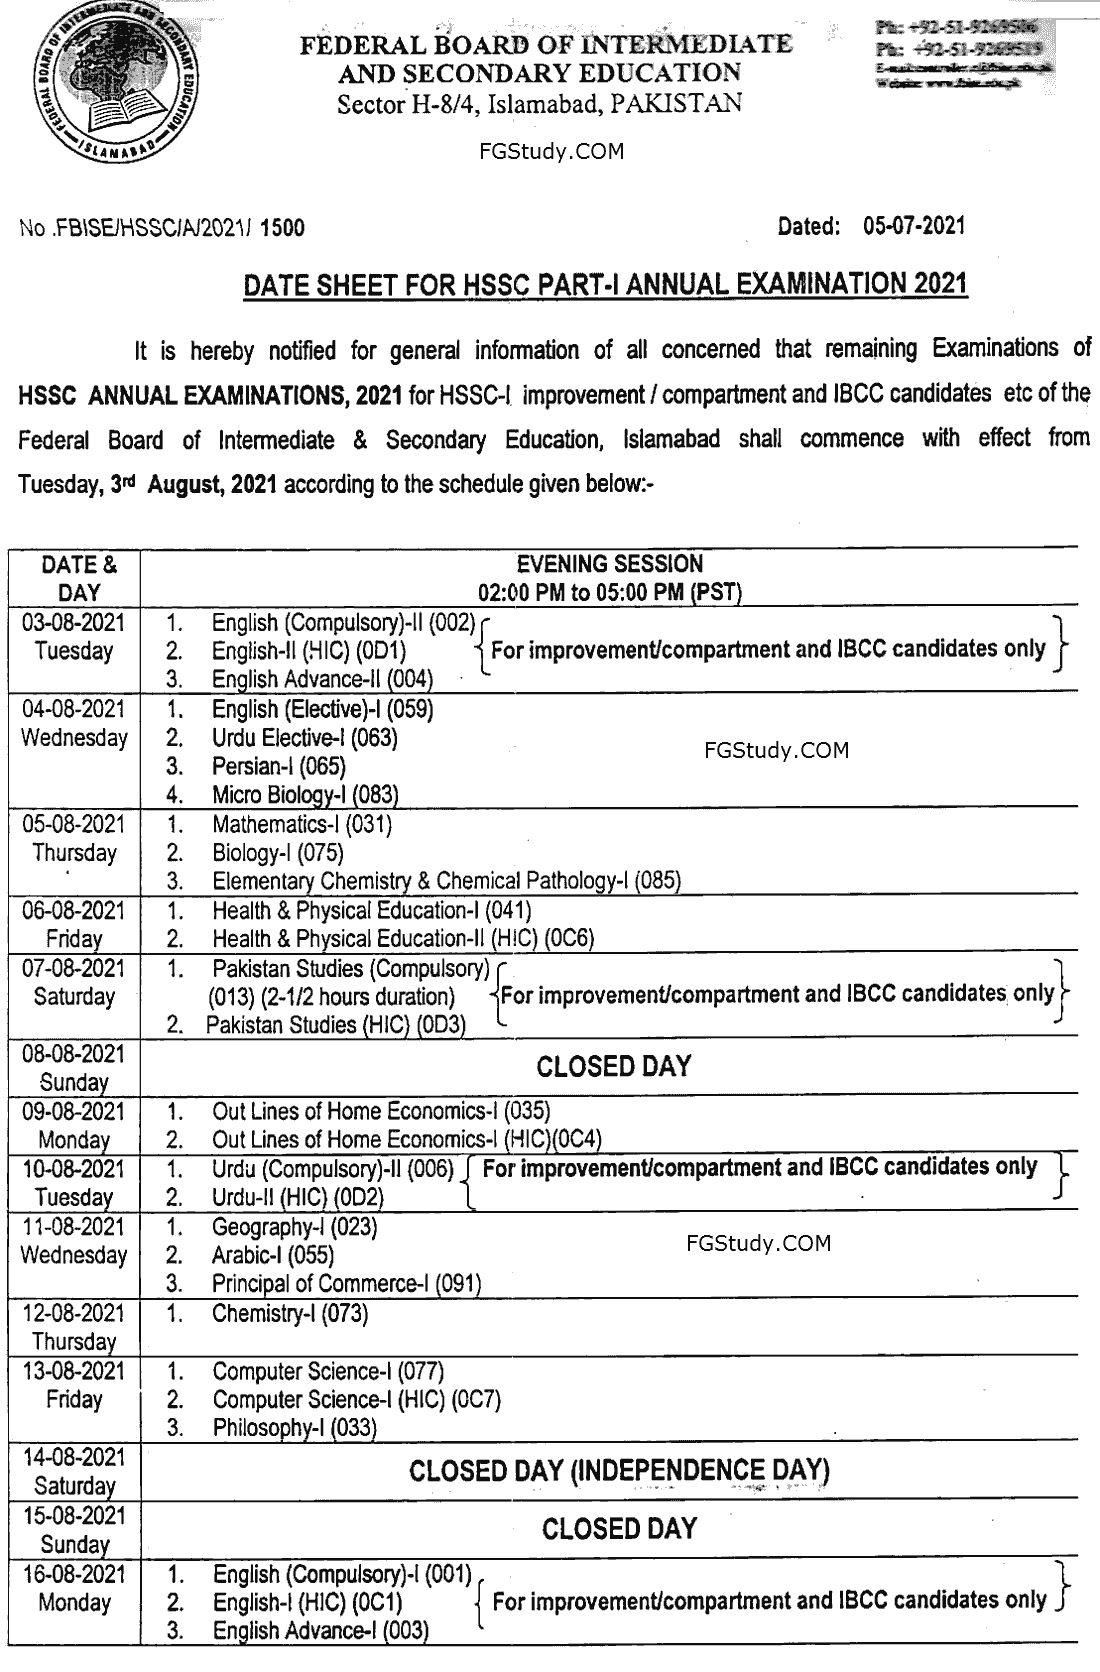 images of fbise date sheet 2021 hssc 1 page 1